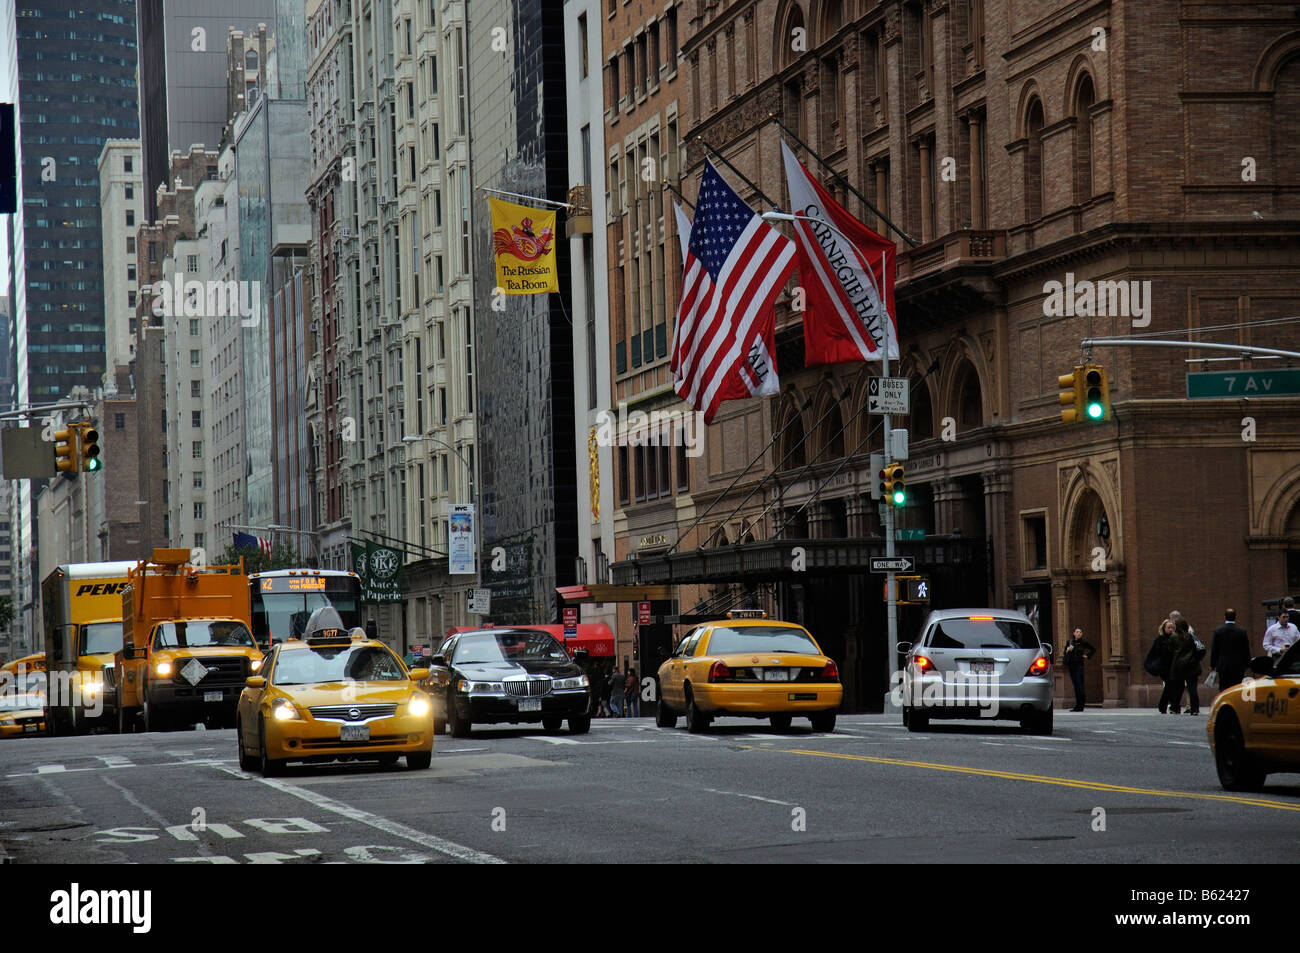 Carnegie Hall midtown Manhattan New York City America USA a US National Landmark building - Stock Image